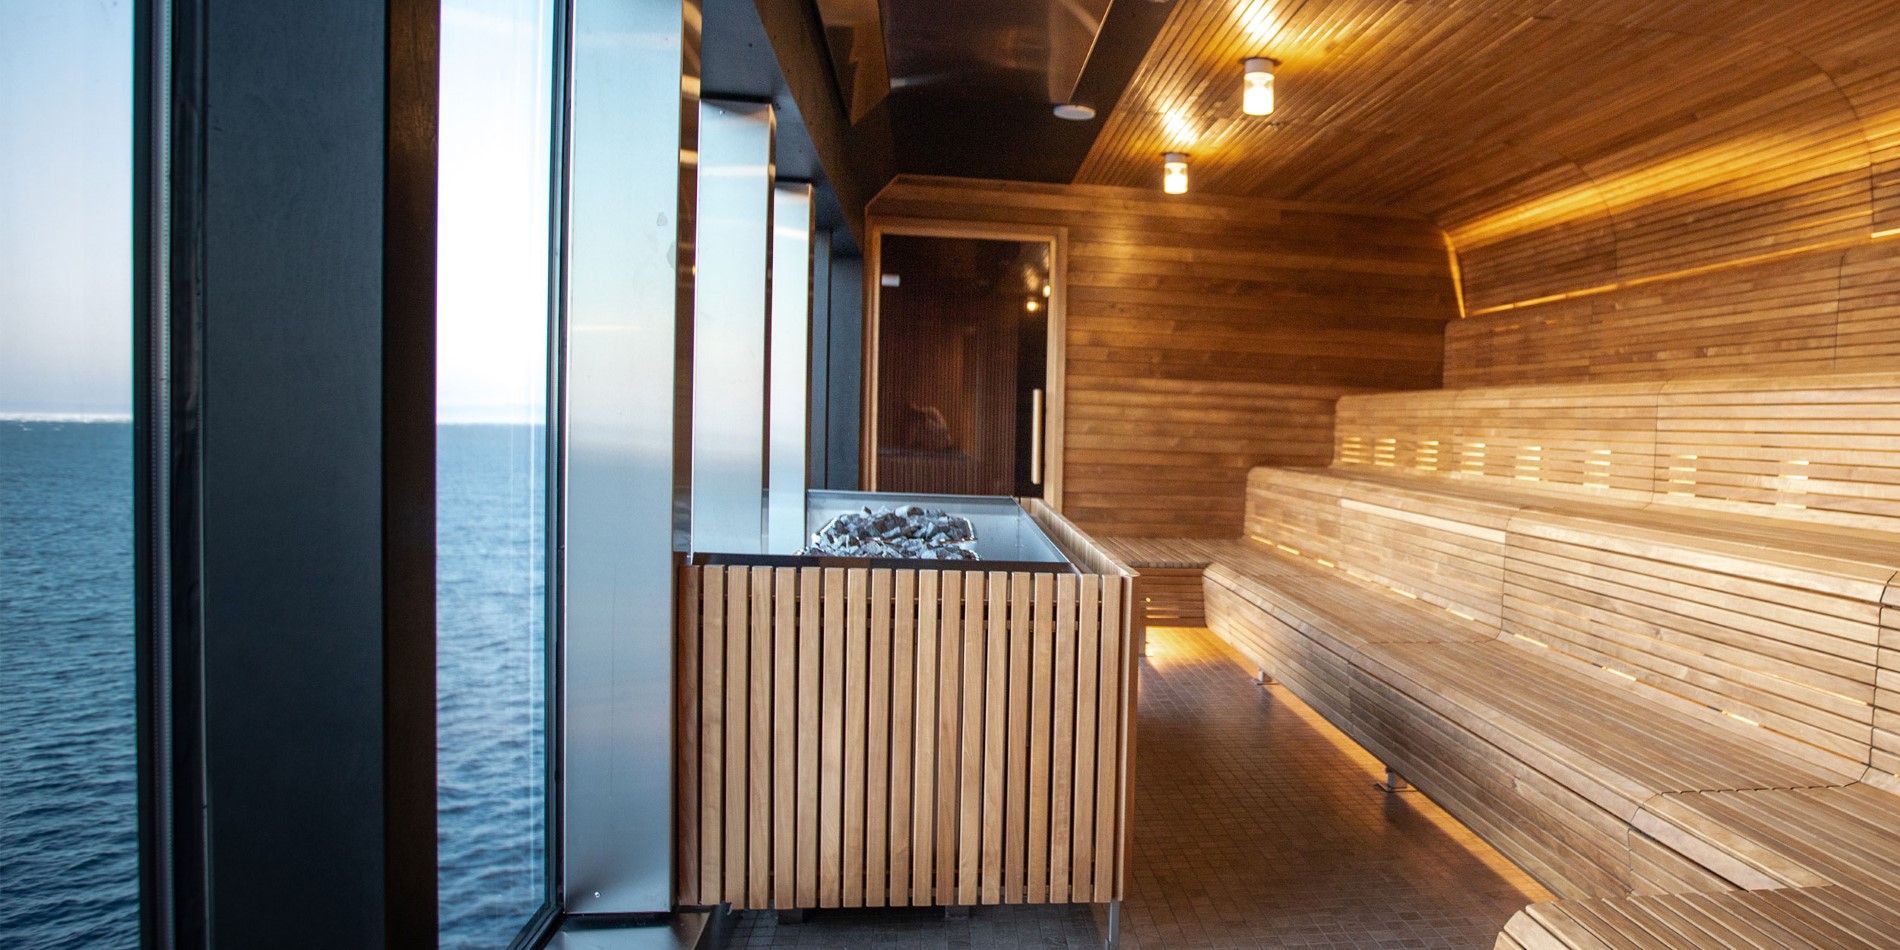 Sauna on Ms Roald Amundsen